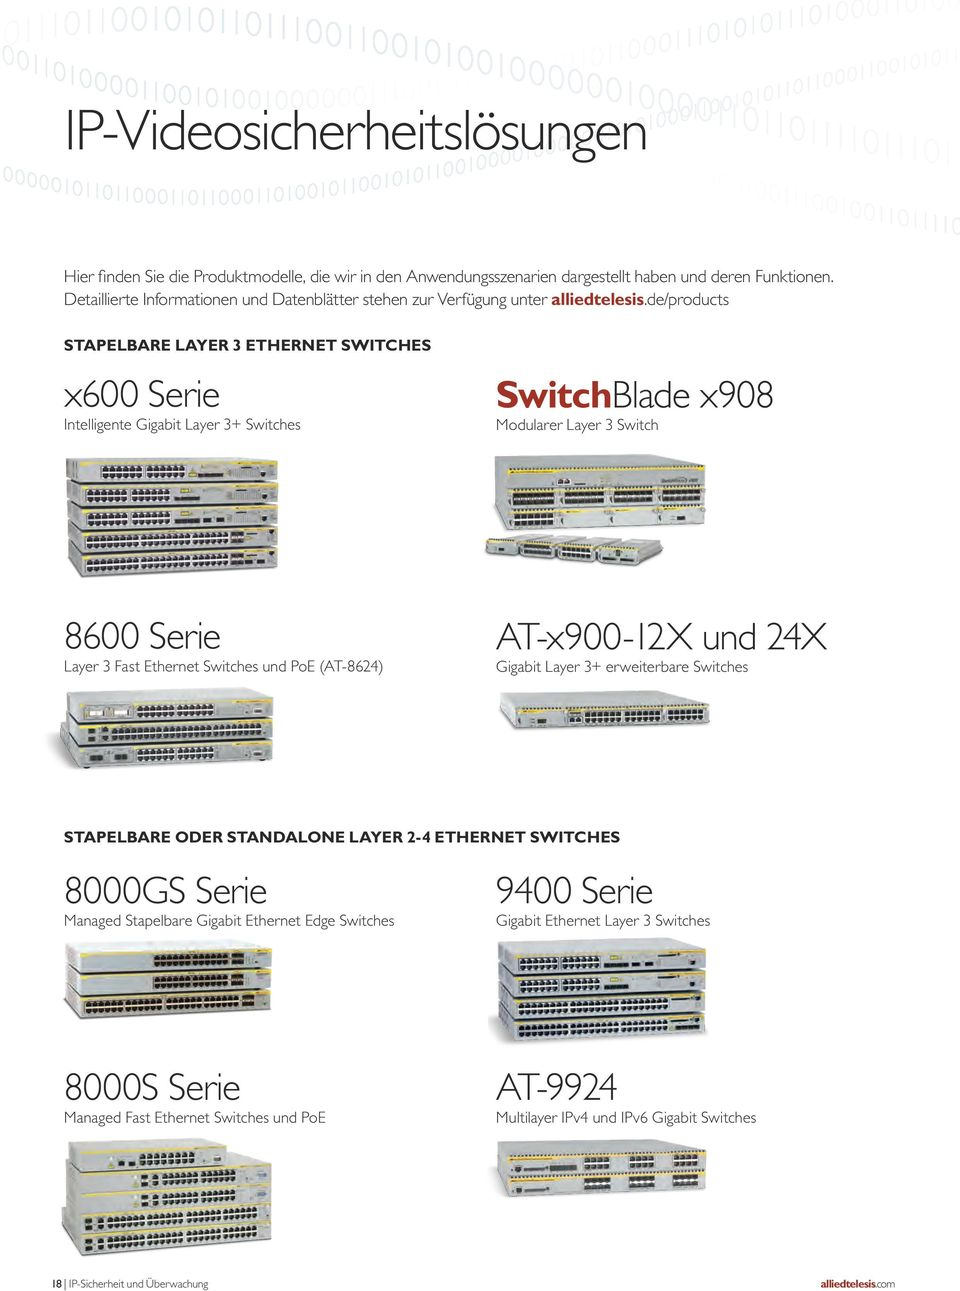 de/products STAPeLBAre Layer 3 ethernet SWITches x600 Serie Intelligente Gigabit Layer 3+ Switches SwitchBlade x908 Modularer Layer 3 Switch 8600 Serie Layer 3 Fast Ethernet Switches und PoE